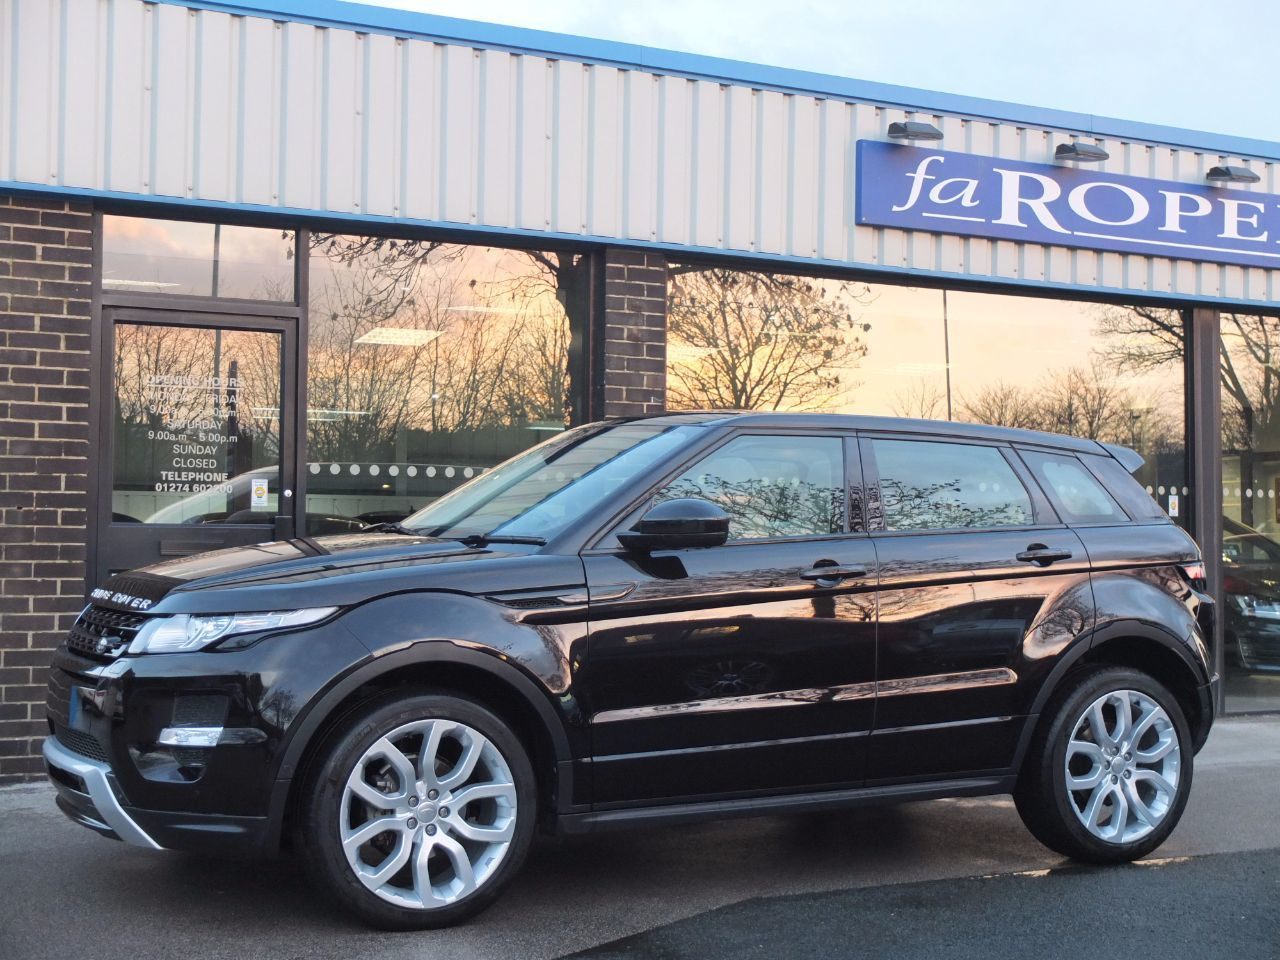 Land Rover Range Rover Evoque 2.2 SD4 Dynamic 5dr [Lux Pack] Automatic Estate Diesel Barolo Black Metallic